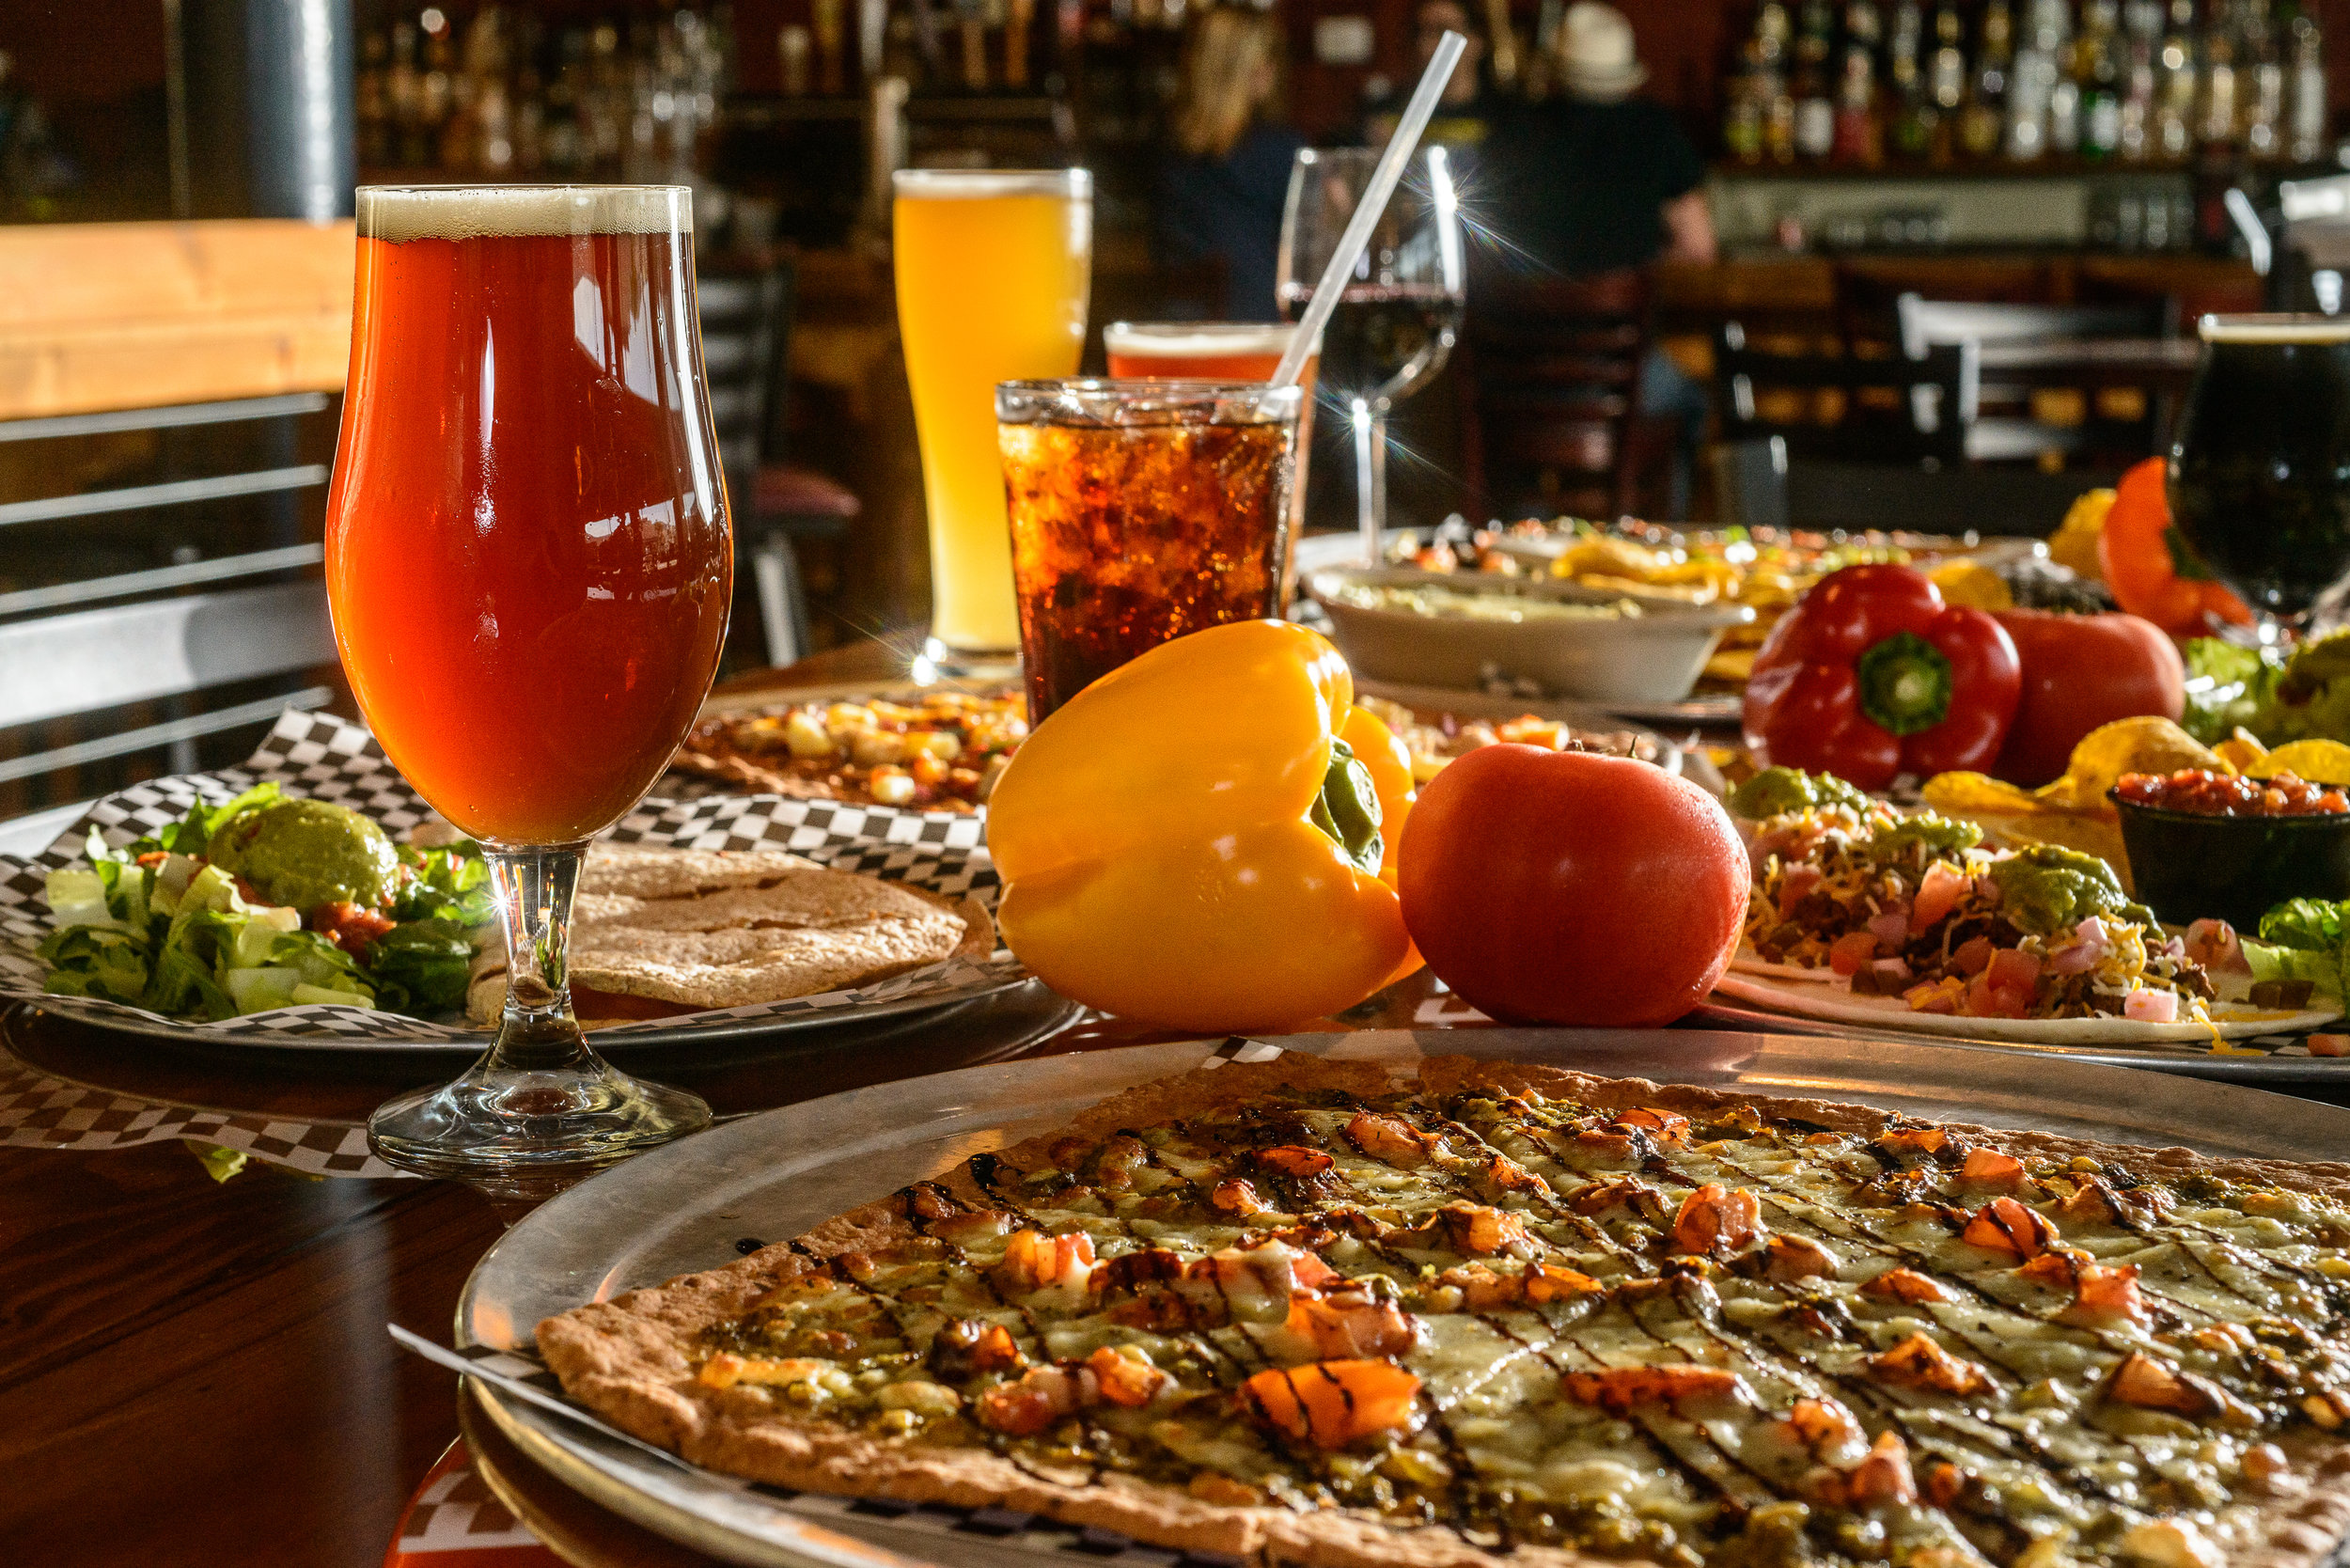 BHB STILL_Food-Beer-BEAUTY_20180530_0039.jpg